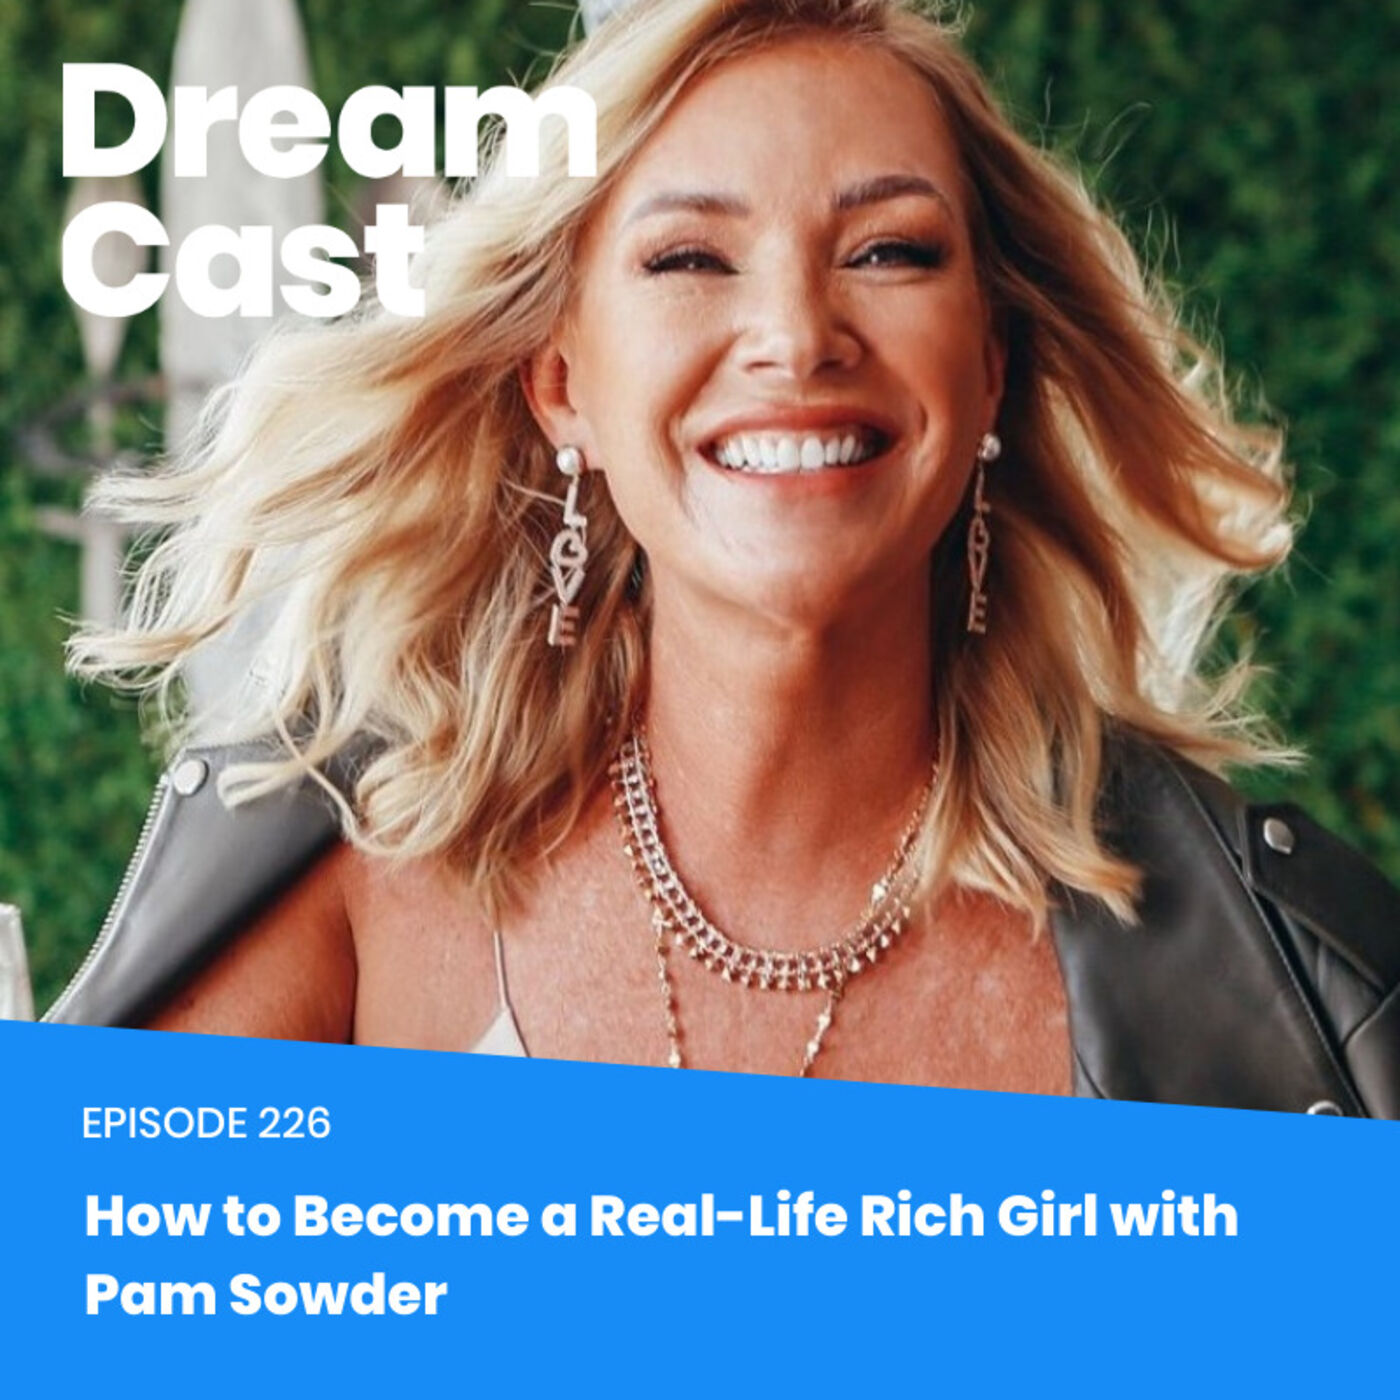 Ep 226: How to Become a Real-Life Rich Girl with Pam Sowder